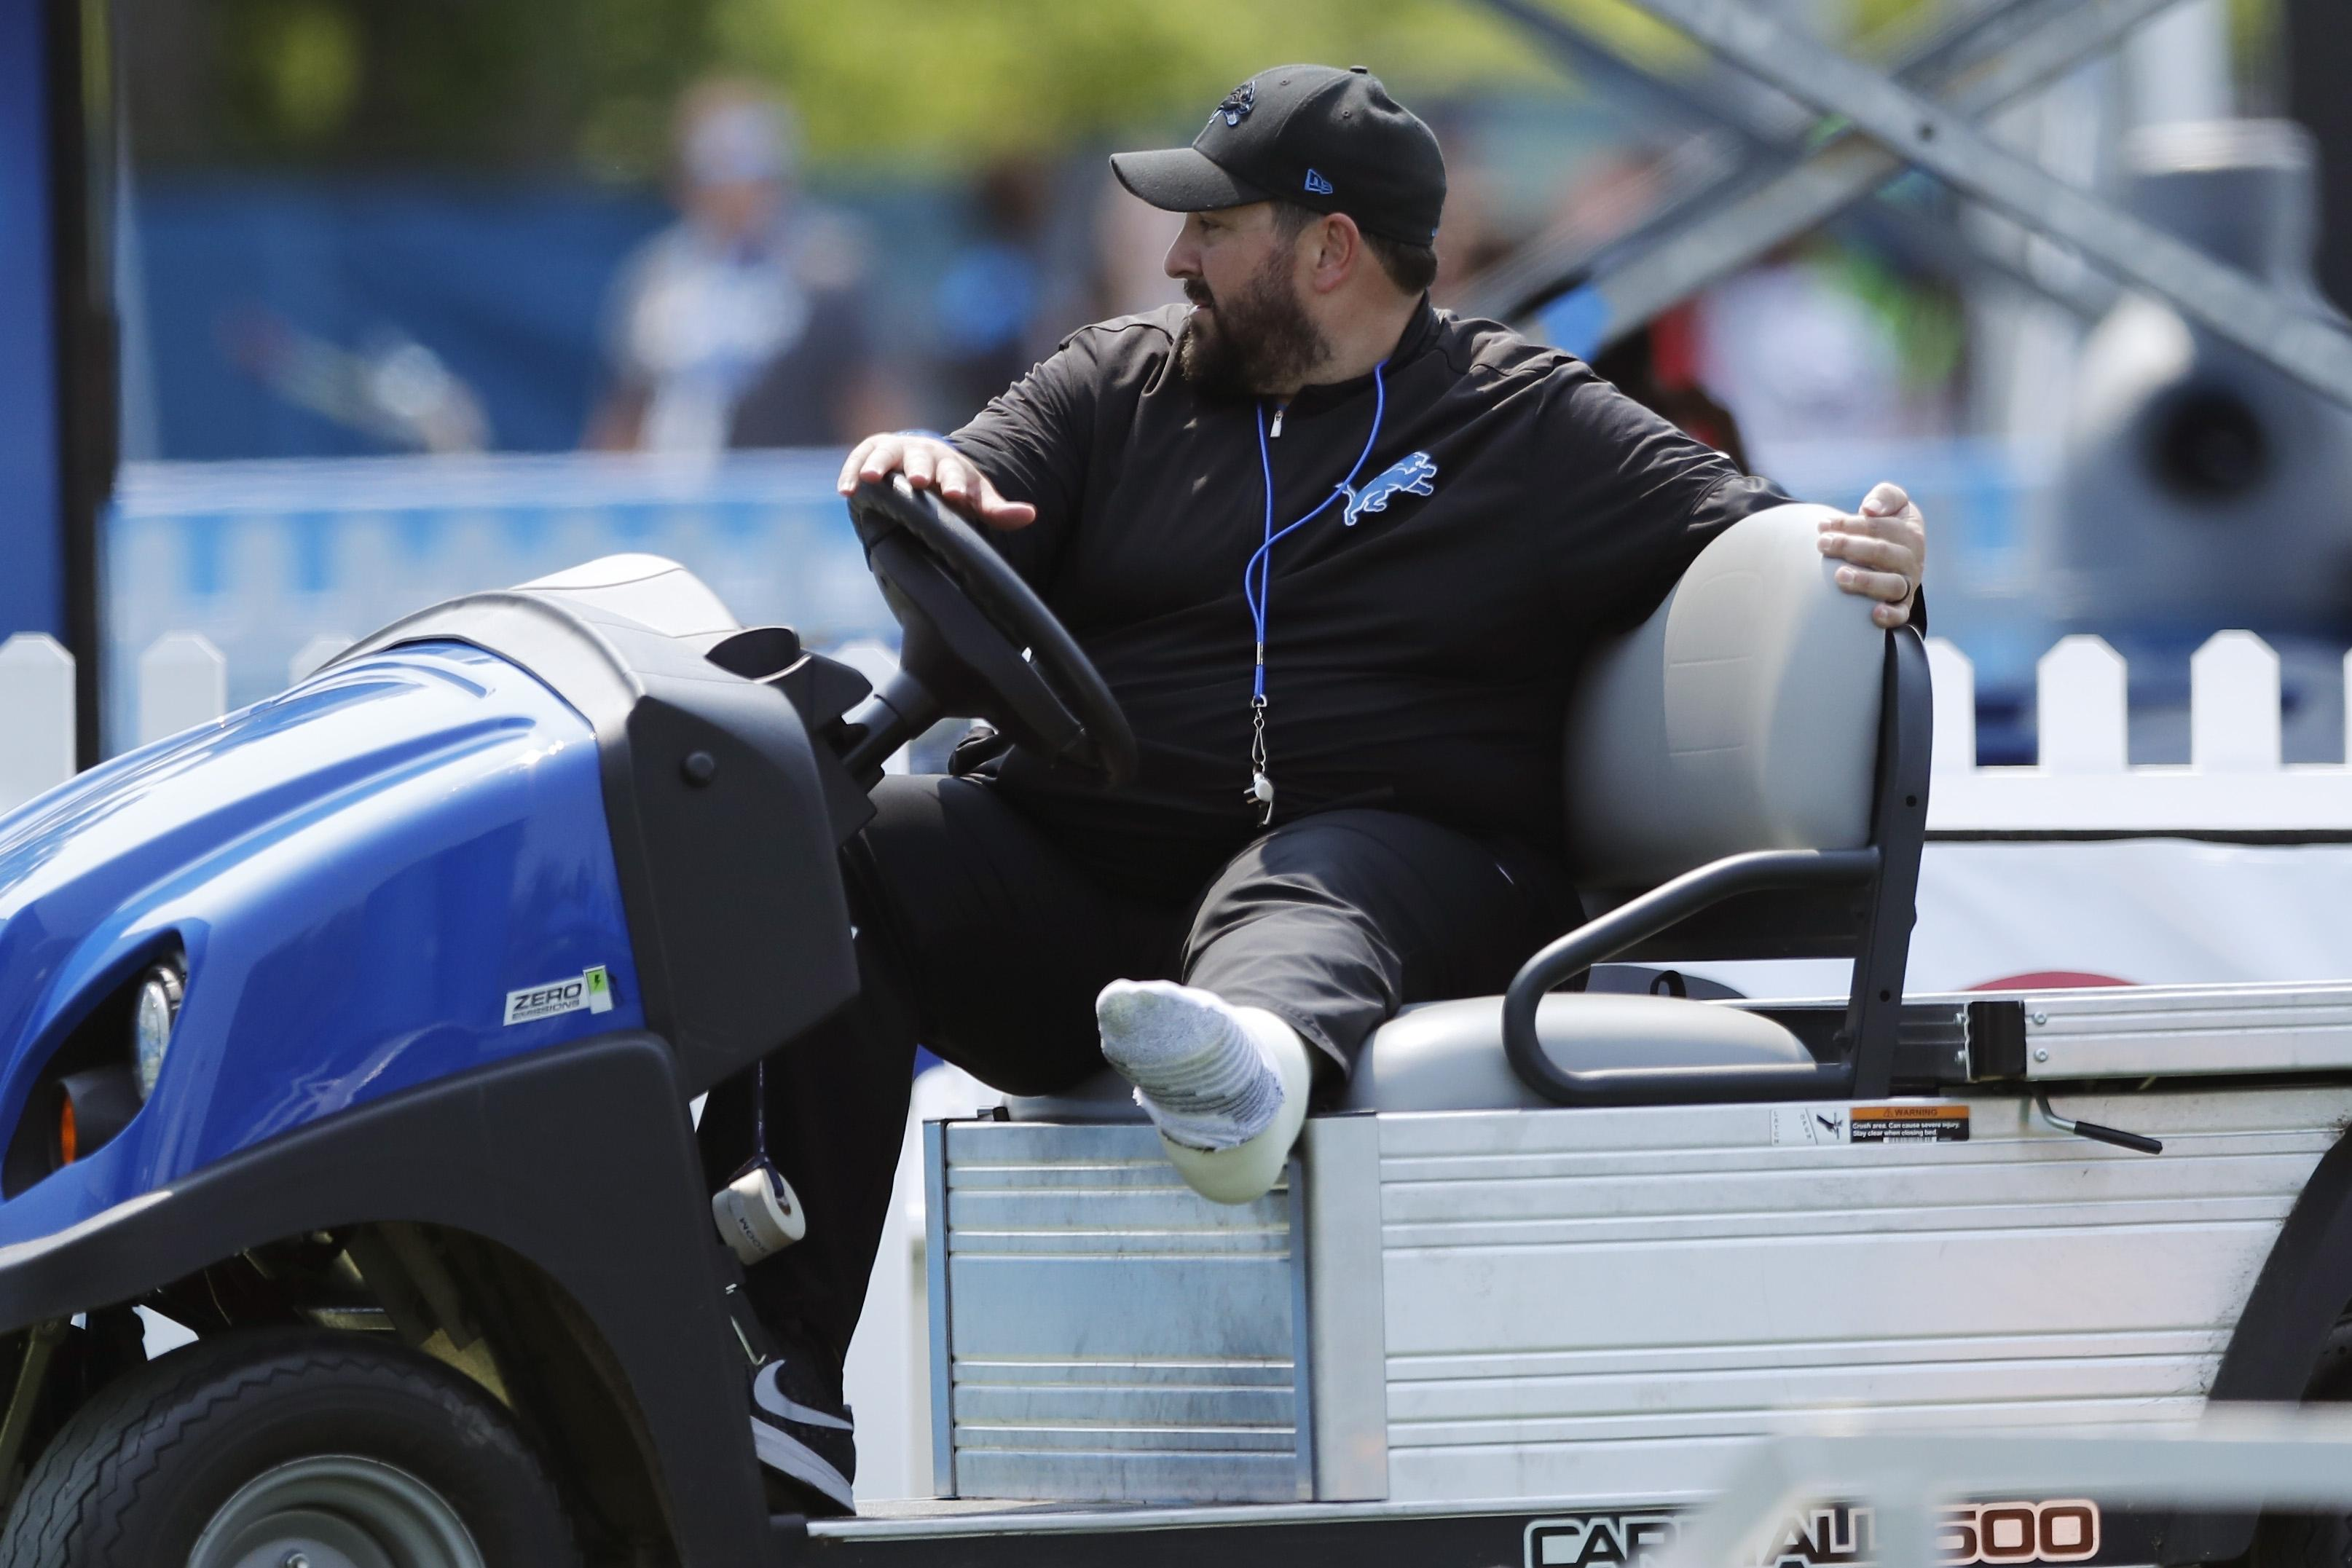 Lions Look To Get Leg Up With Coach Matt Patricia Arriving